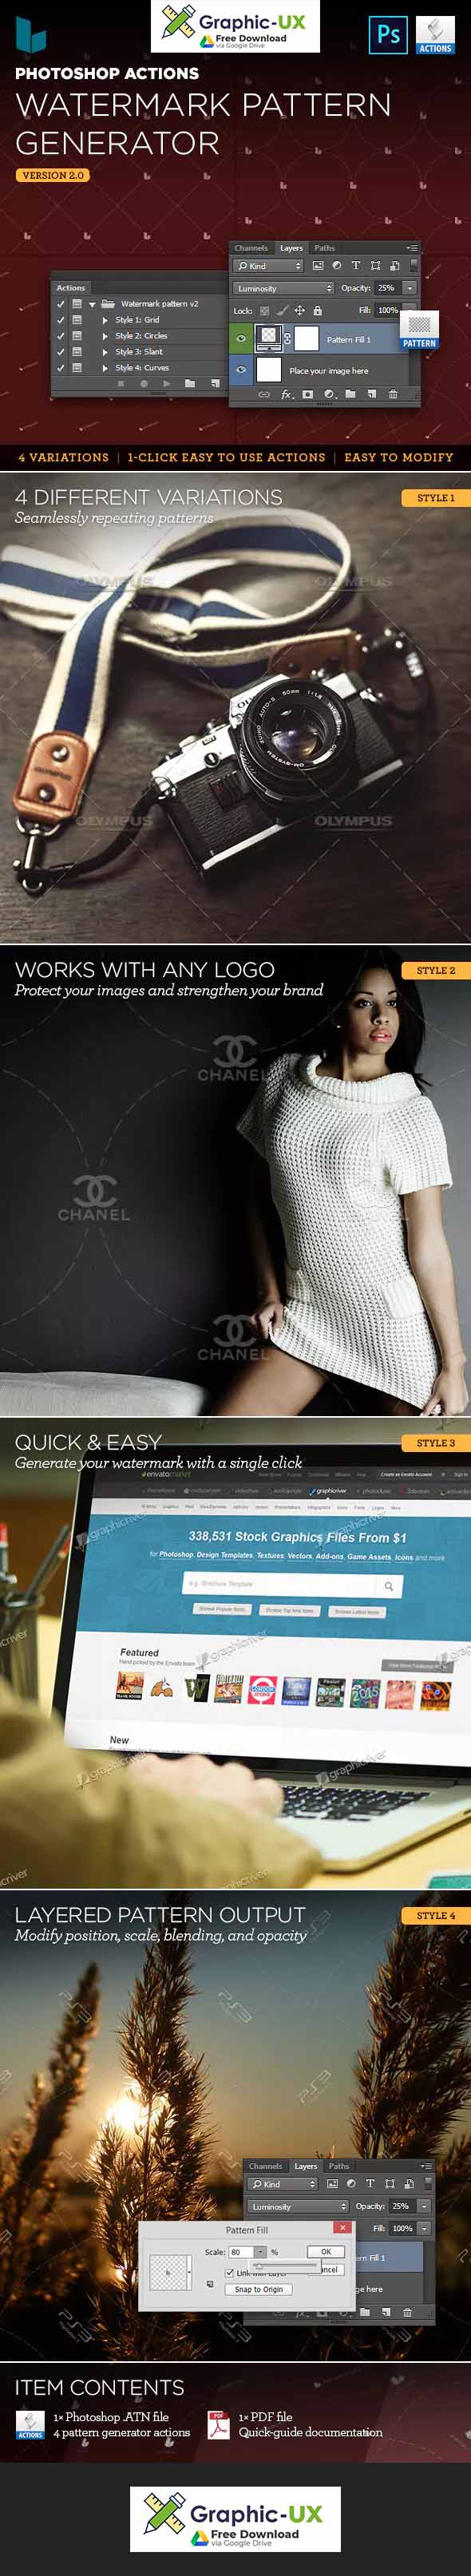 Photoshop Action Watermark Pattern Generator Free Graphicux